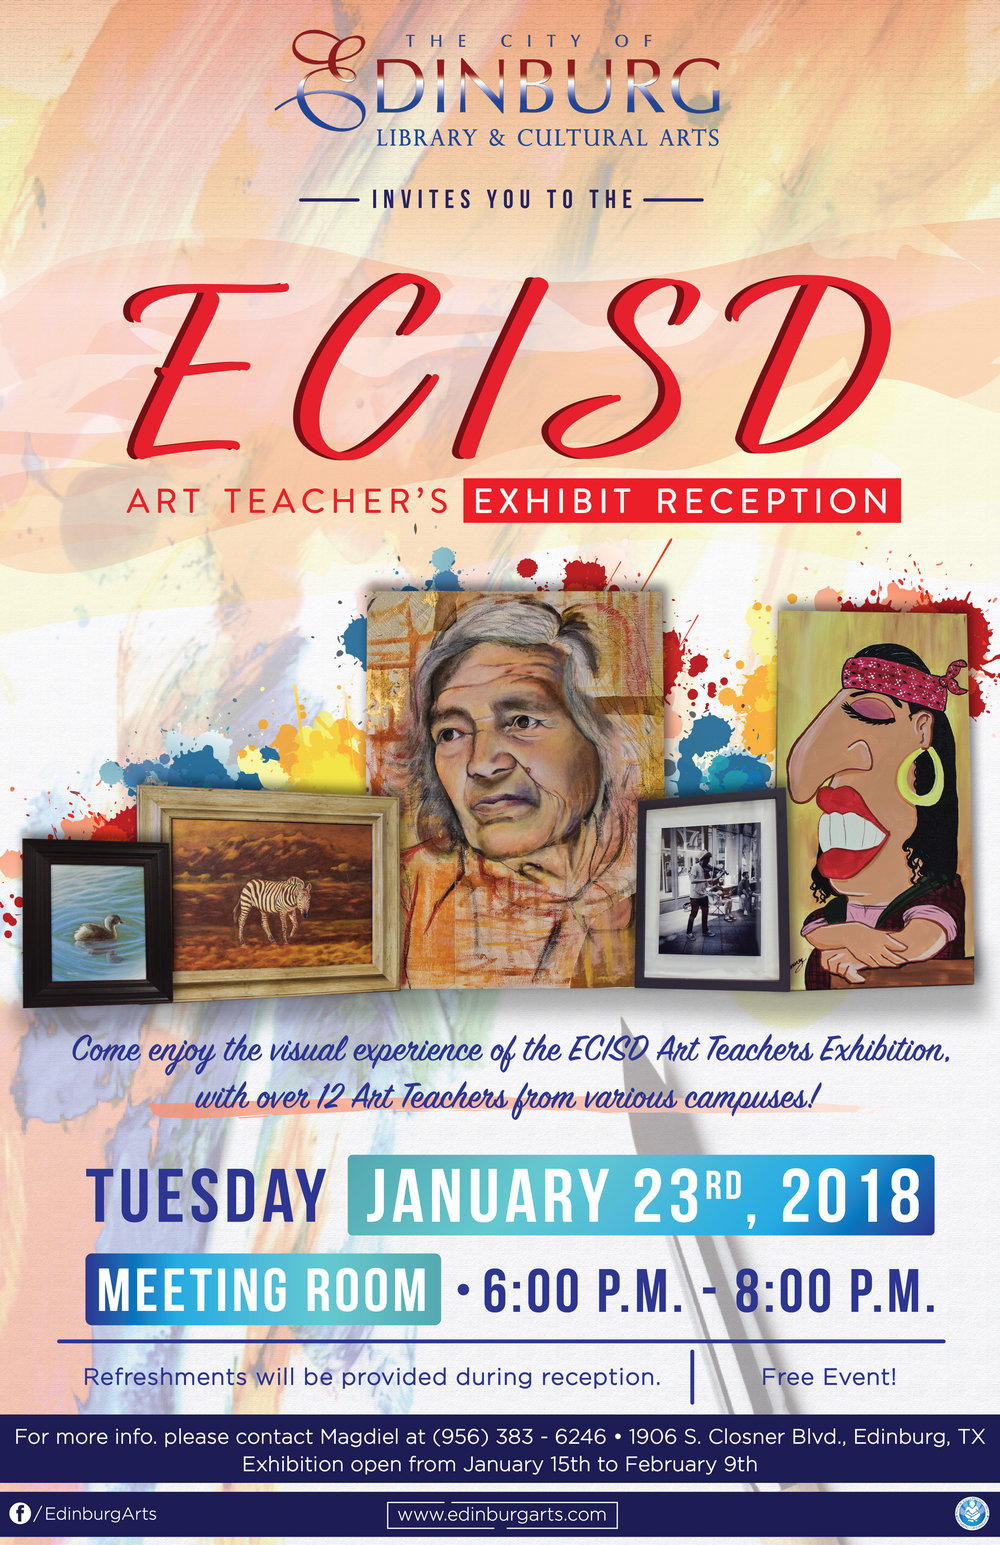 ECISD Teachers Exhibit Flyer.jpg